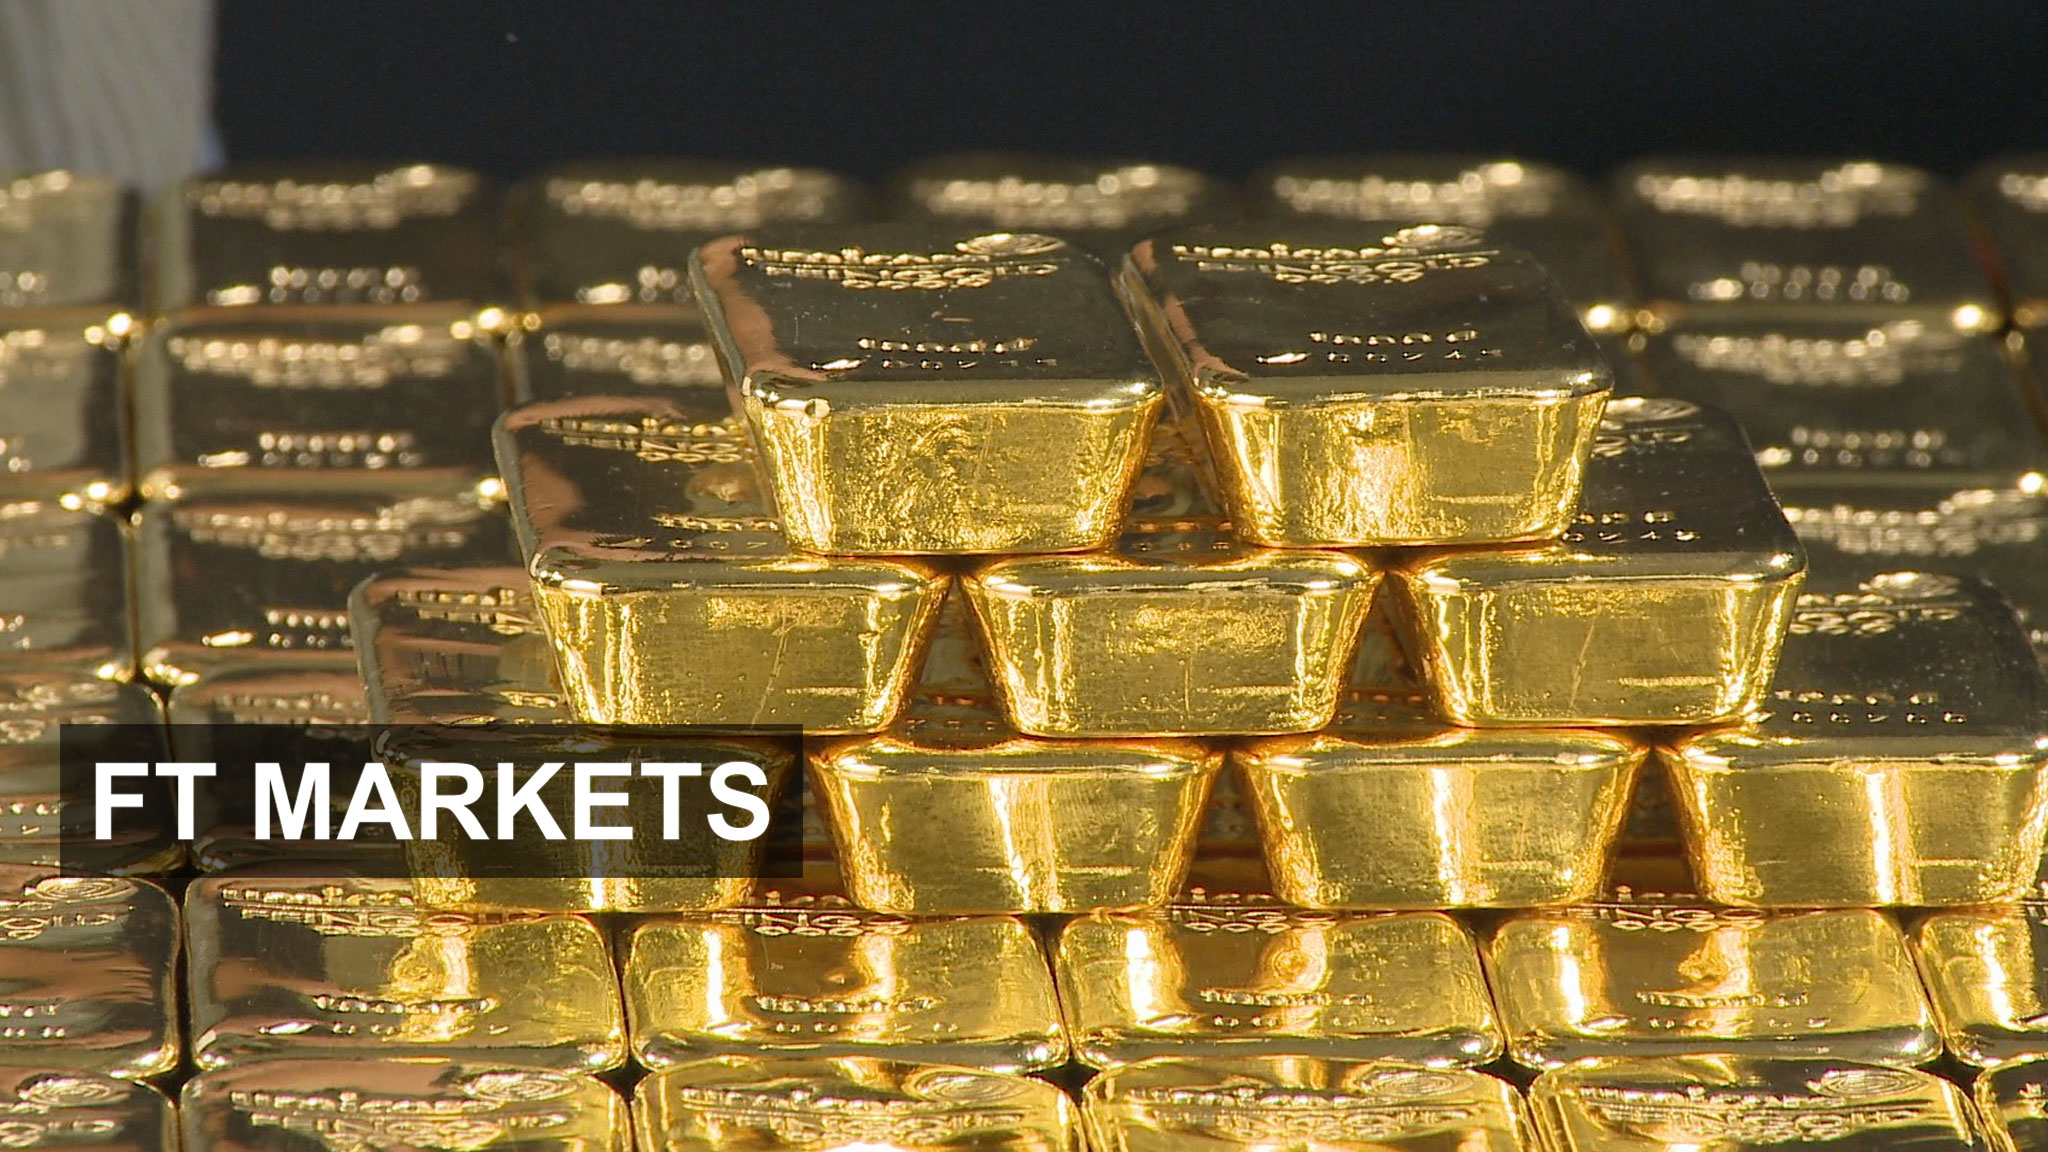 The Gold Market in 90 Seconds